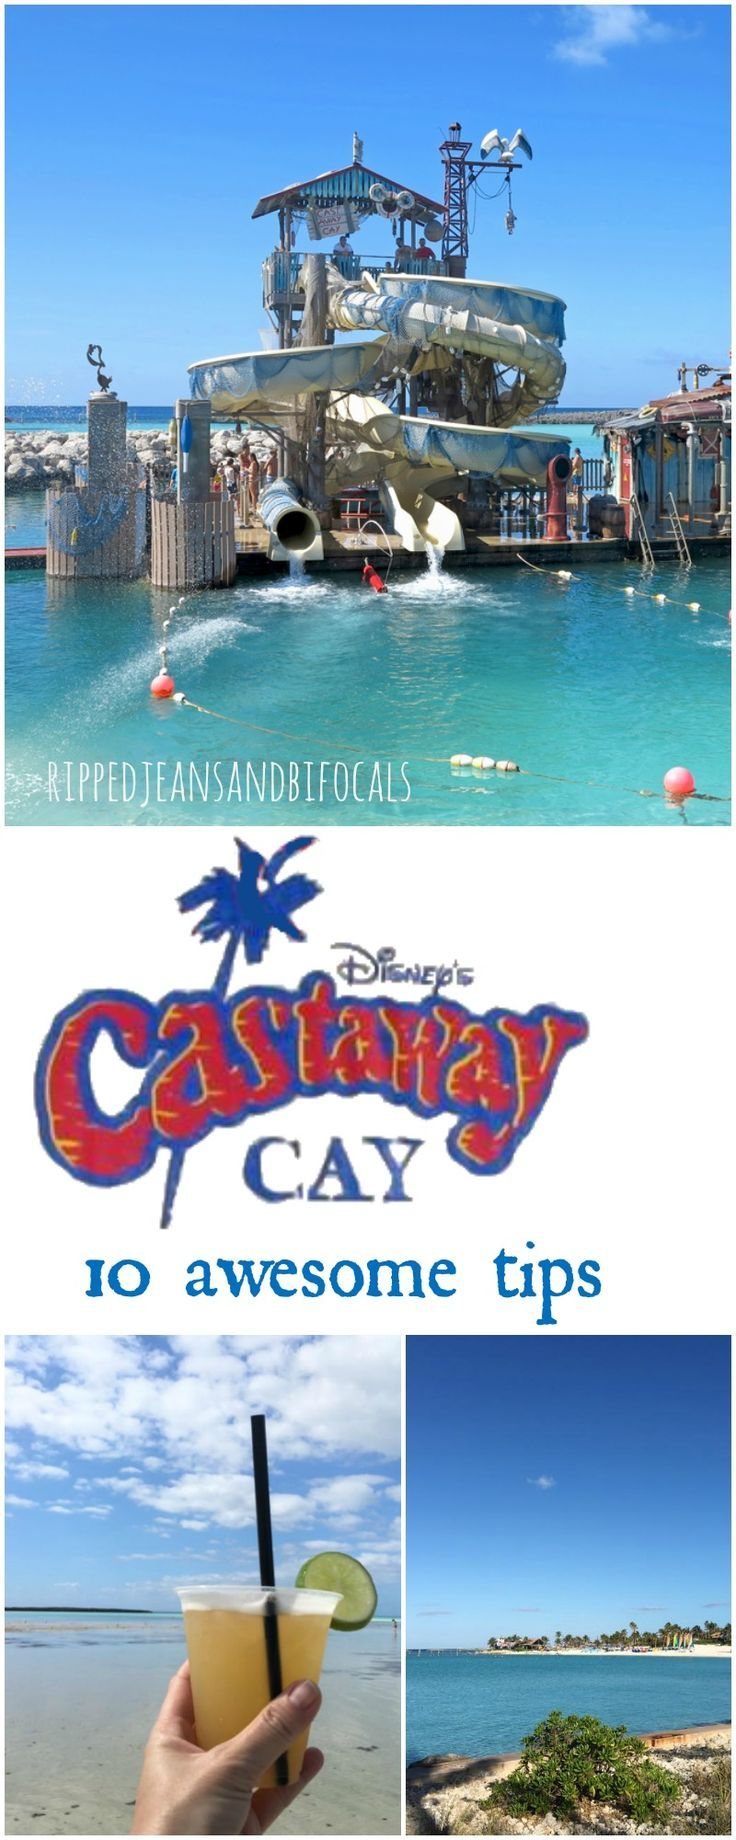 10 Tips to help you get the most out of Castaway Cay  |Disney Cruises|Disney Wonder|Castaway Cay|Castaway Cay tips|Castaway Cay activities|Disney Social Media Moms|DSMMC|Disney vacations|Disney vacation ideas|Family travel|Travel tips|travel with kids|Cruise tips|